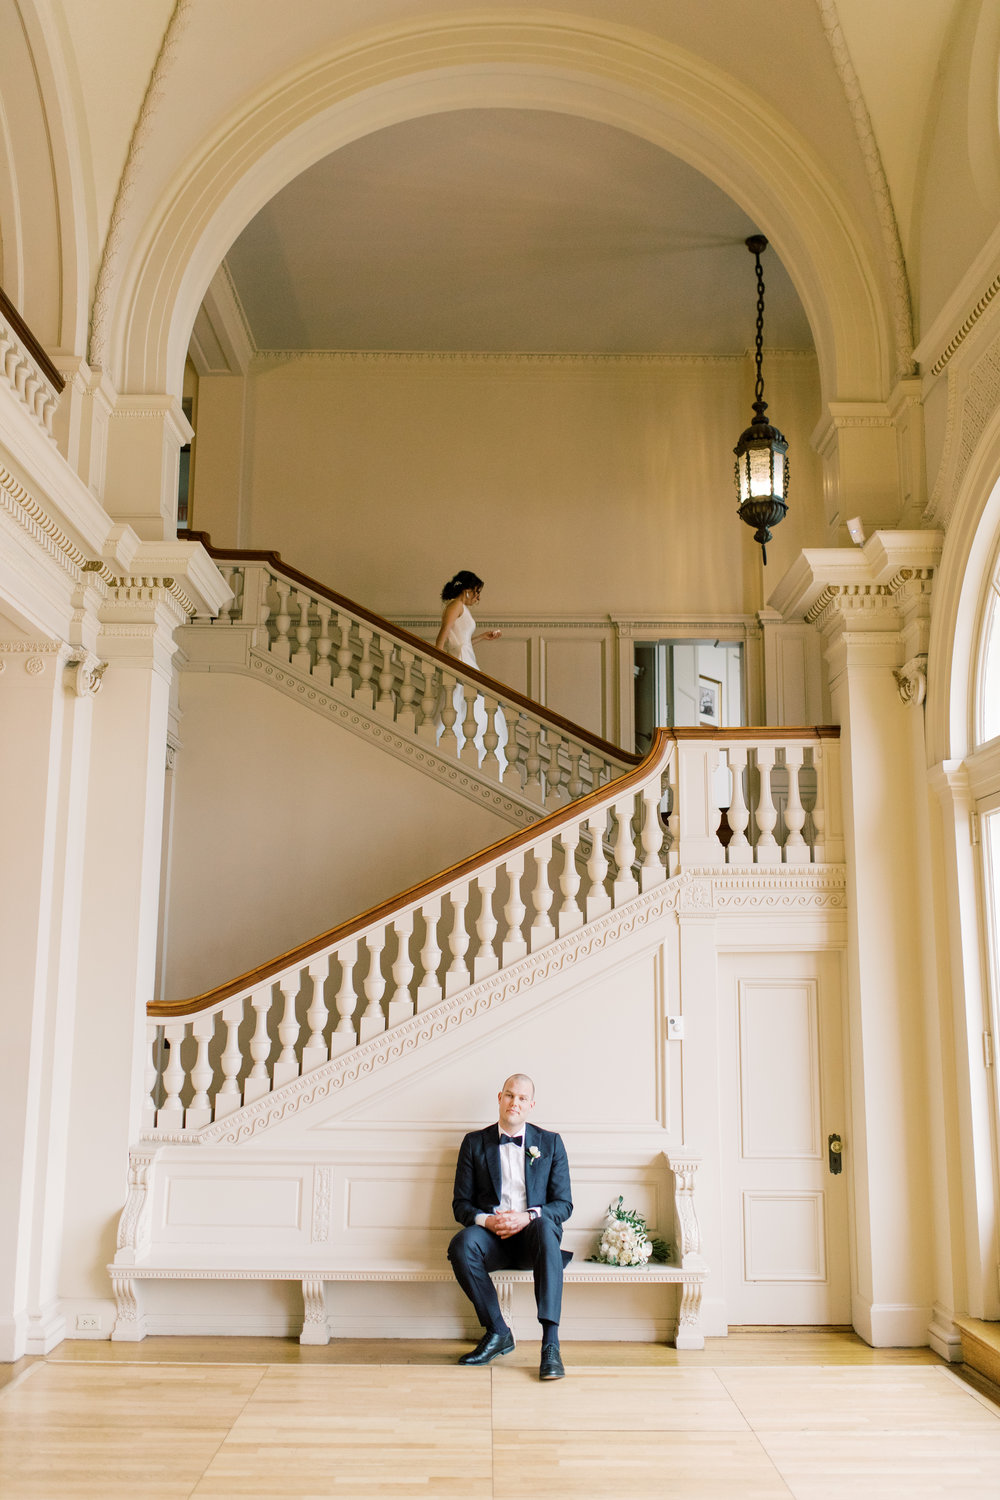 Our bride goes down the grand staircase as our groom waits to see her for the first time at their romantic and classic wedding day for their french inspired green and white Cairnwood Estate wedding